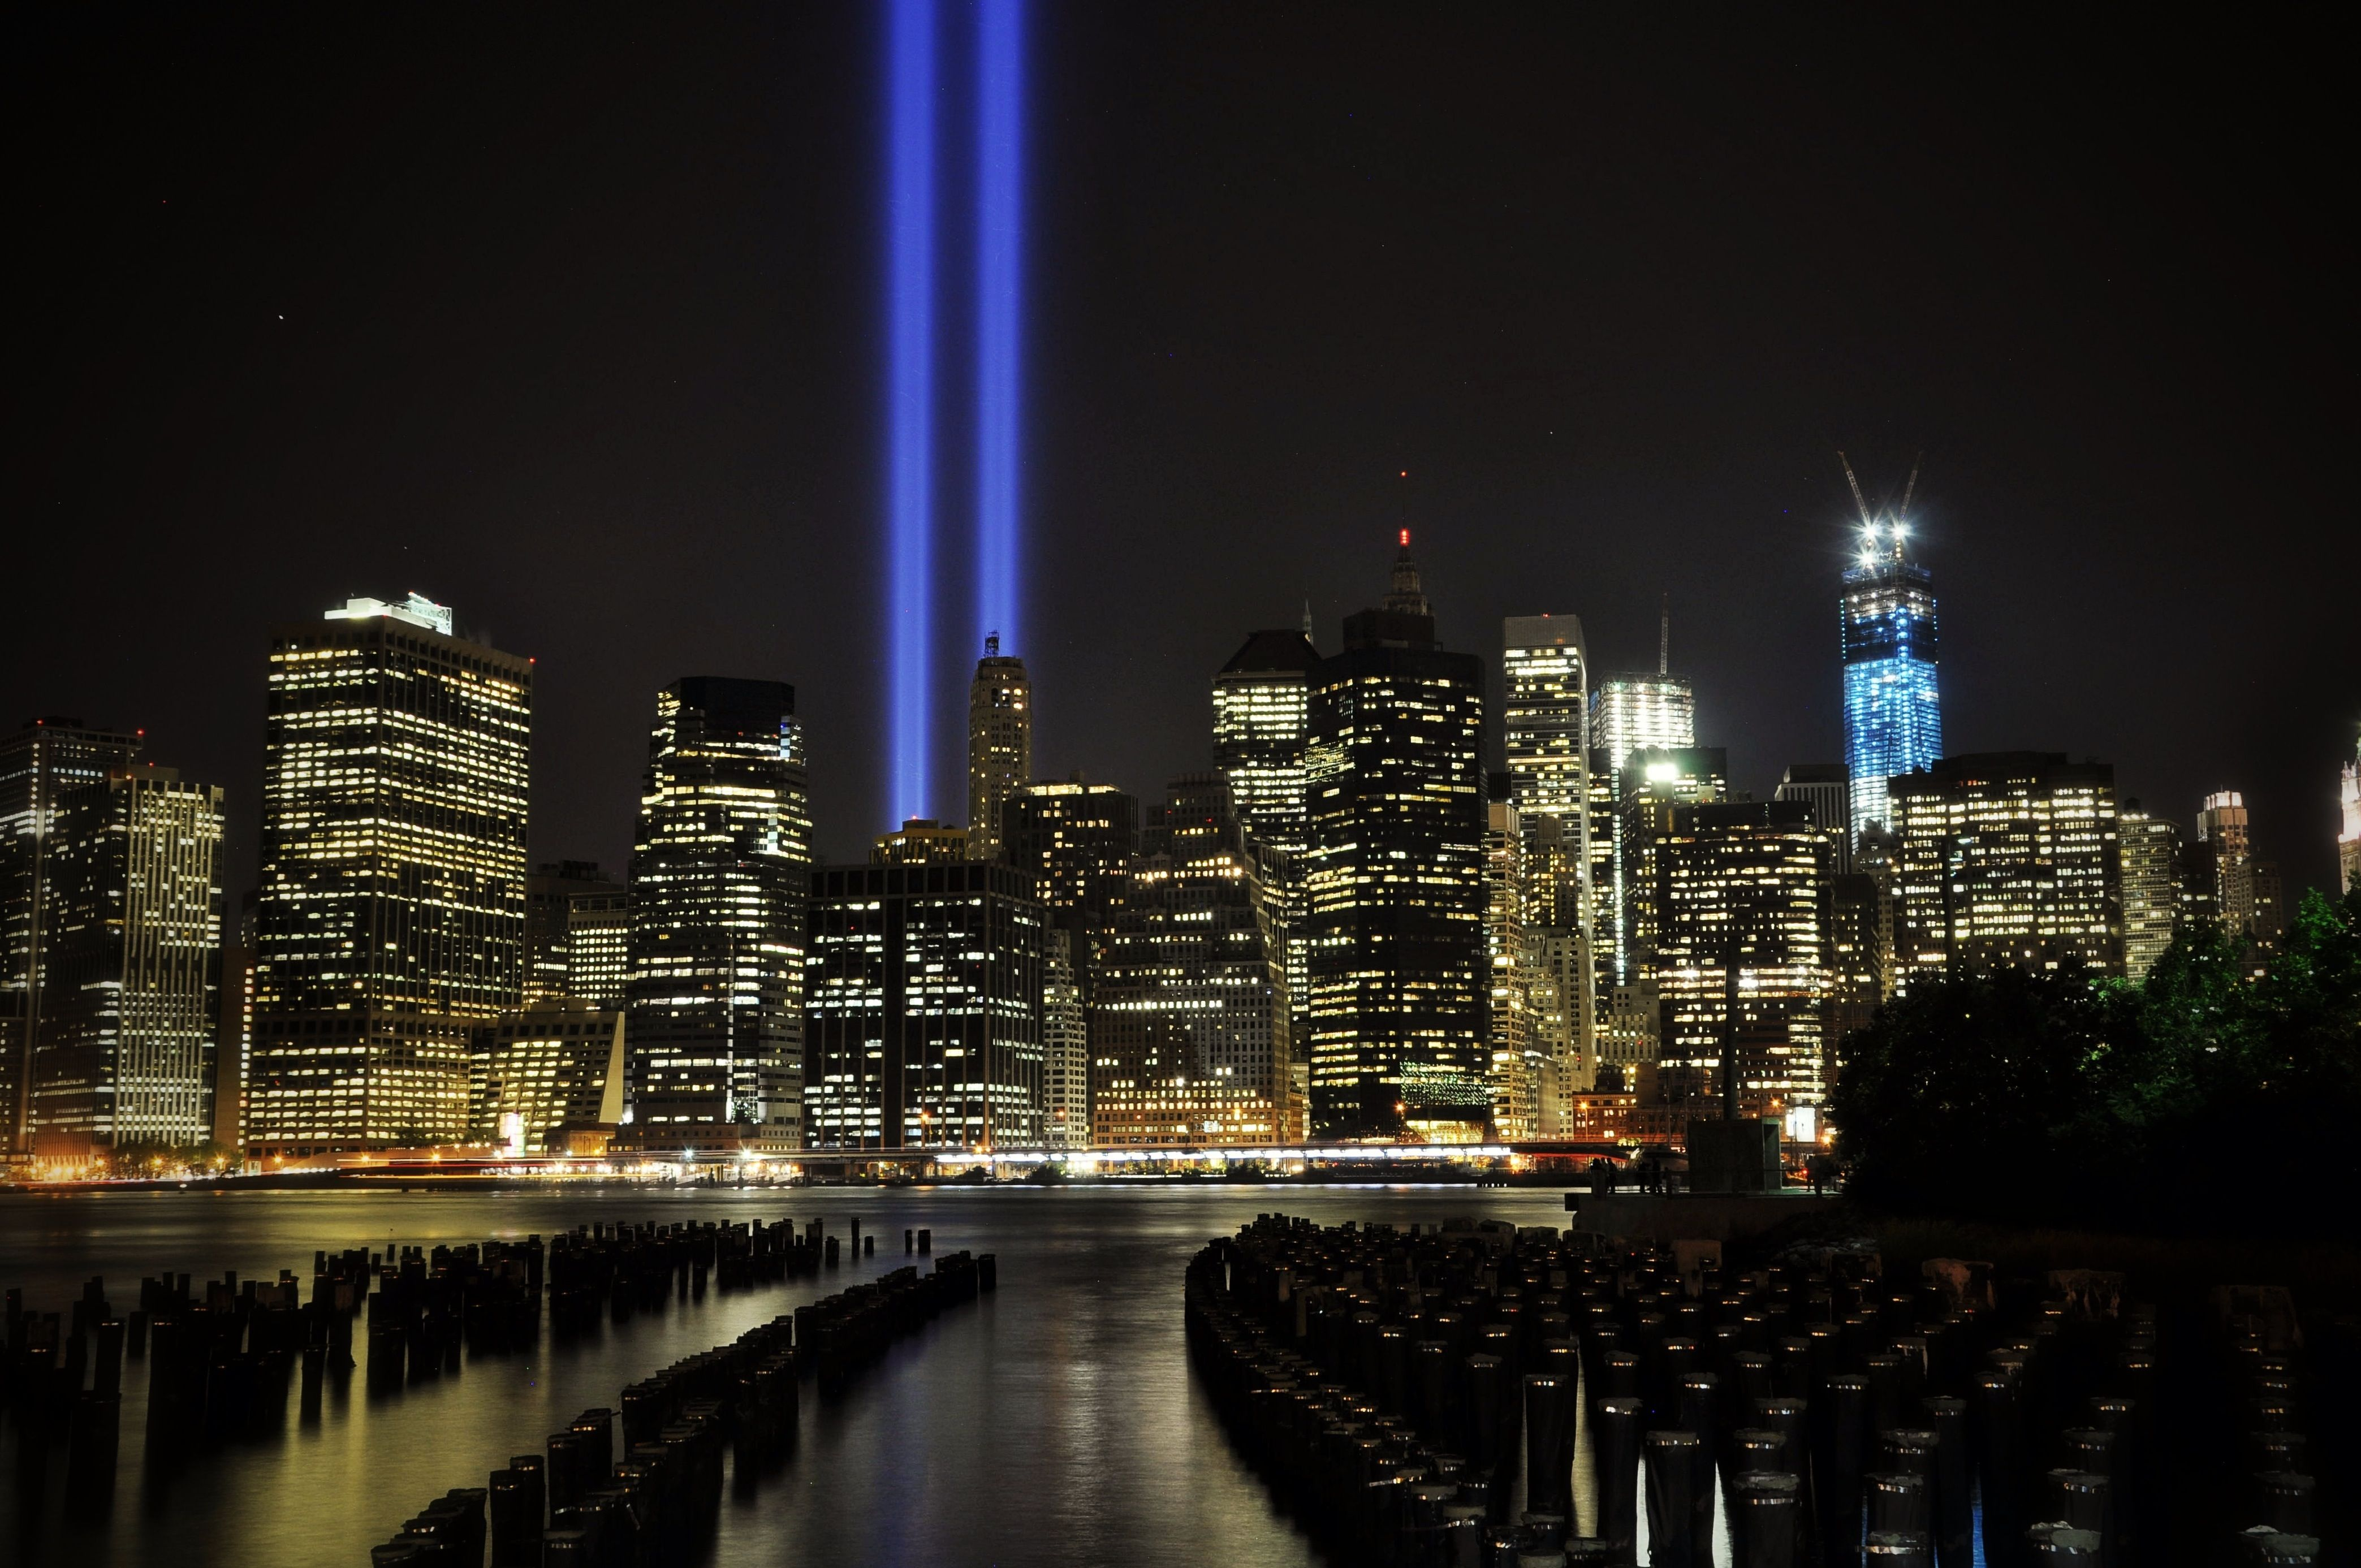 9 11 Memorial 11 Memorial Lights 9 11 Memorial Lights Memories Lit Wallpaper Photo Galleries